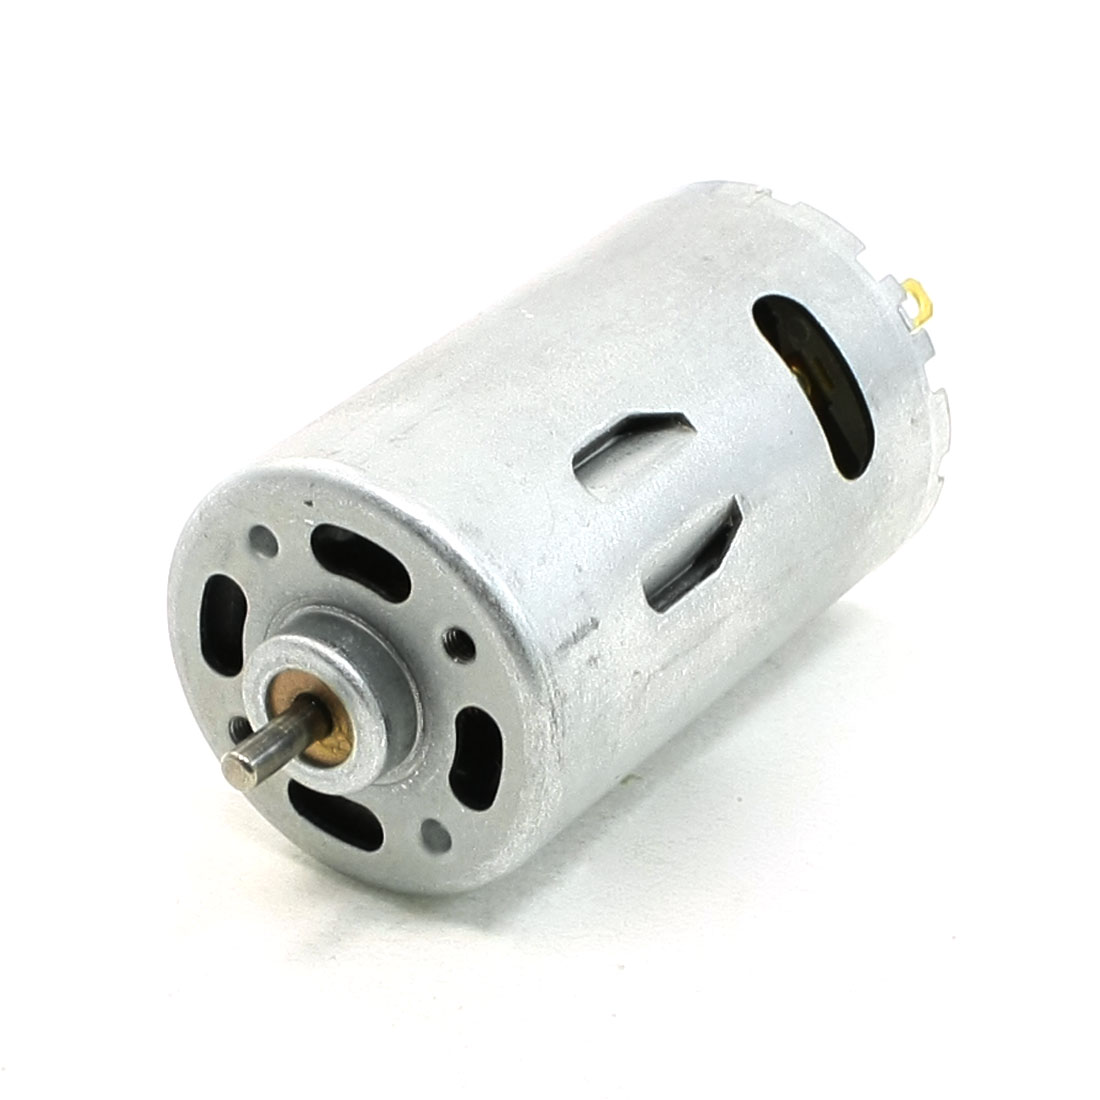 DC 12V Volt 5500RPM Rotated Speed Cylinderical Electric Geared Motor